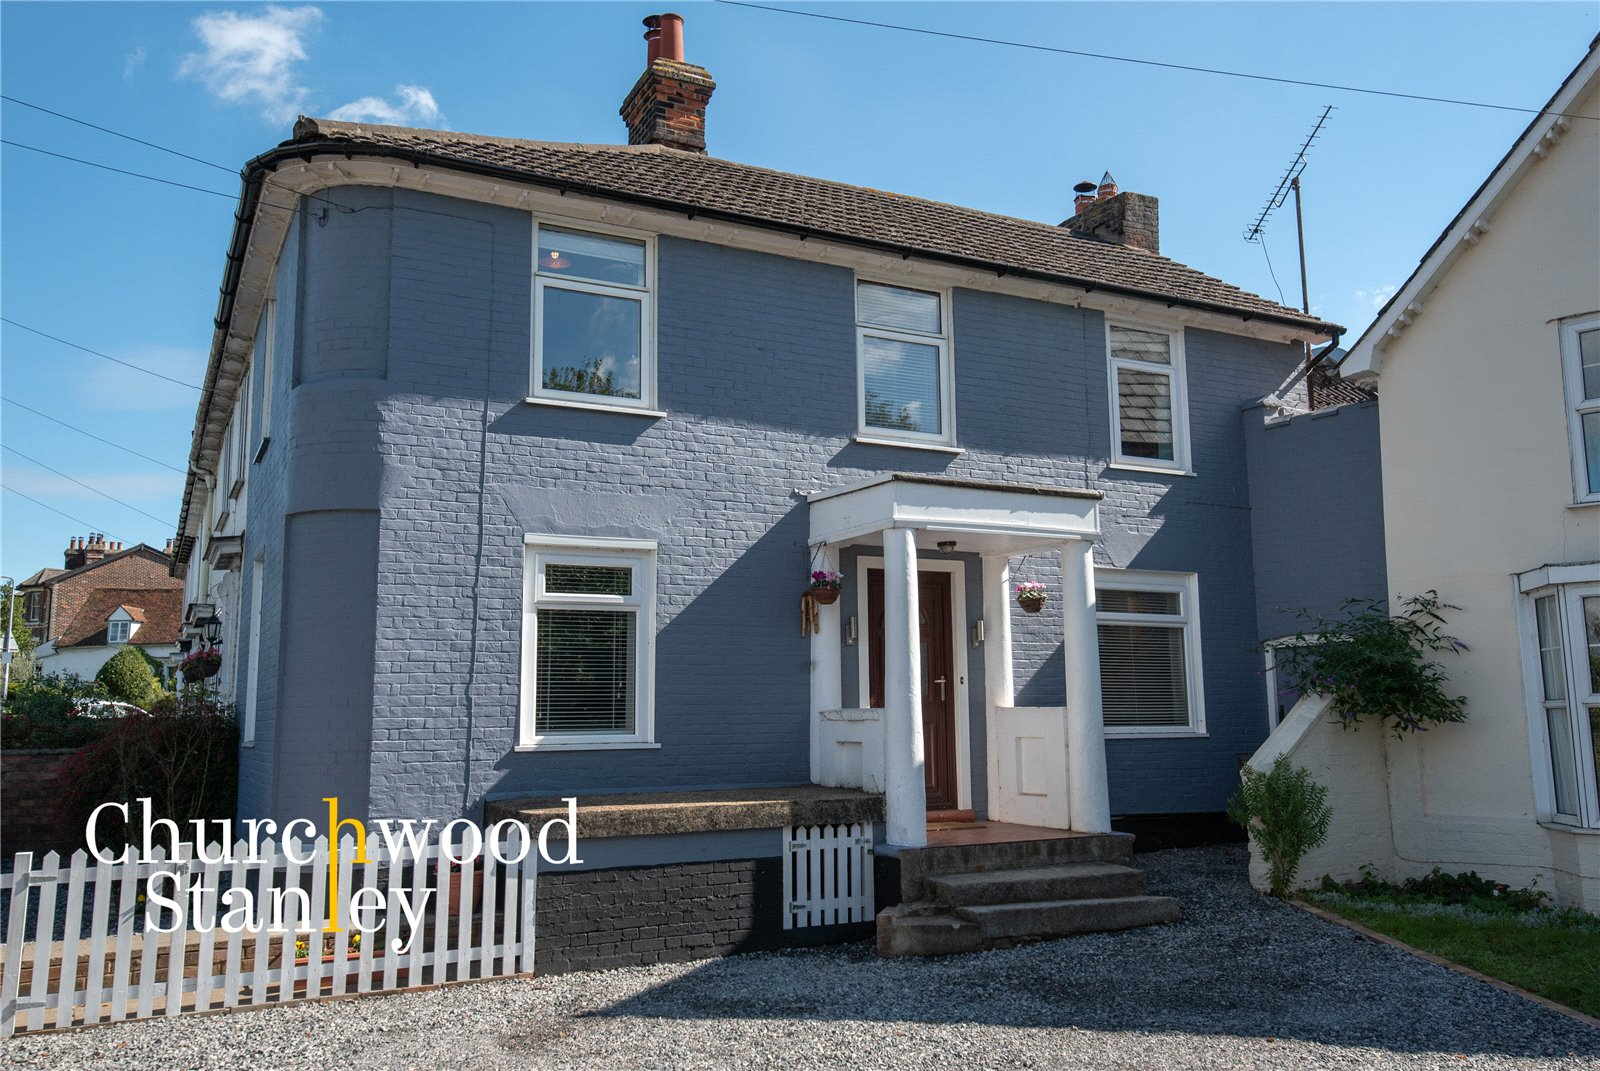 3 bed end-of-terrace-house for sale in Harwich Road, Mistley, Manningtree, CO11